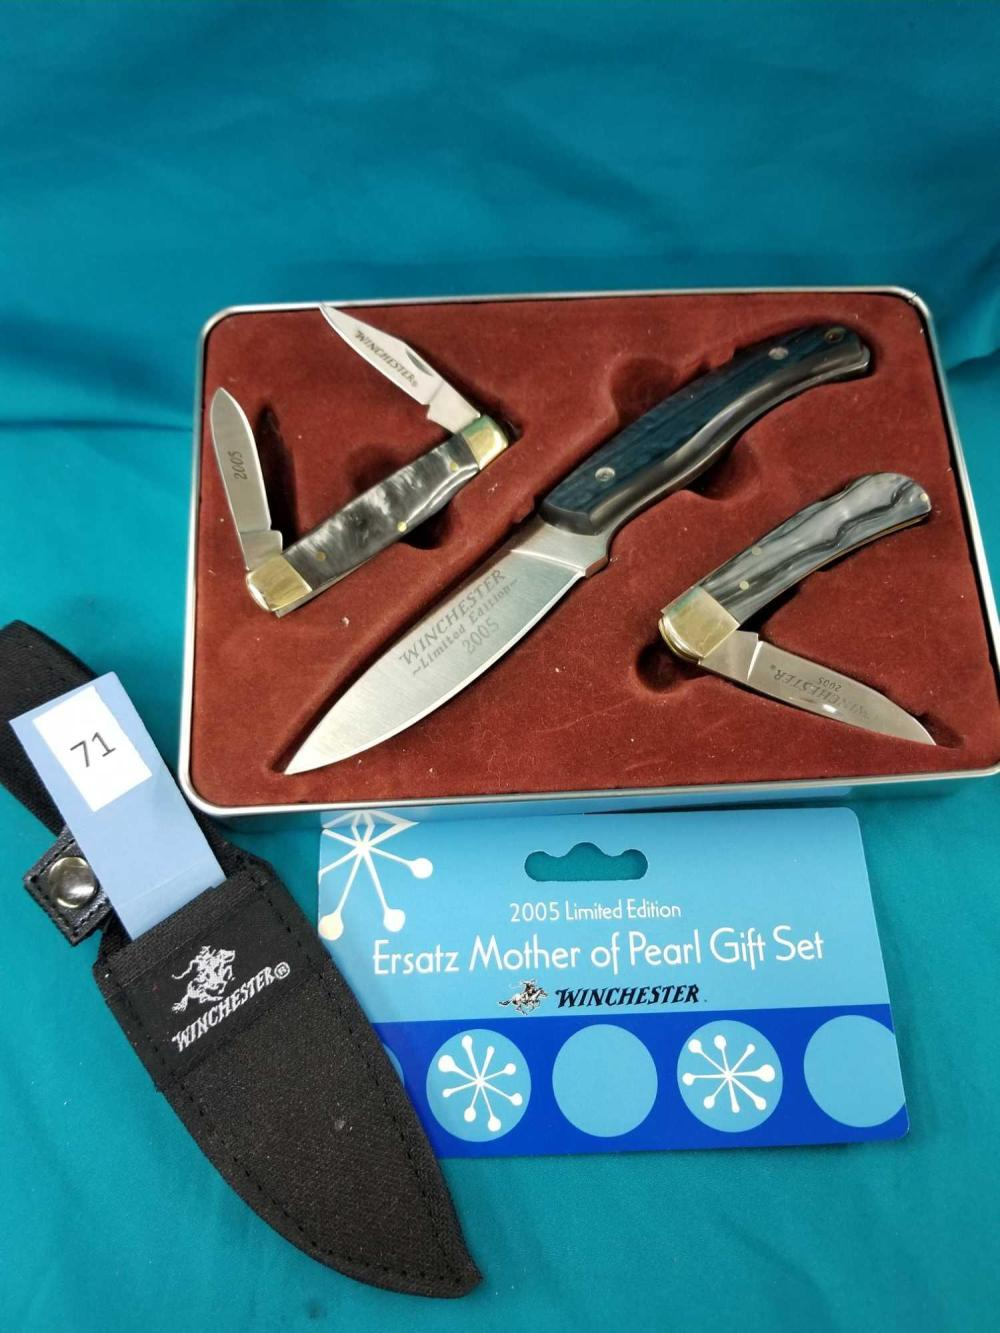 WINCHESTER LIMITED EDITION 2005 ERSATZ MOTHER OF PEARL 3 KNIFE GIFT SET